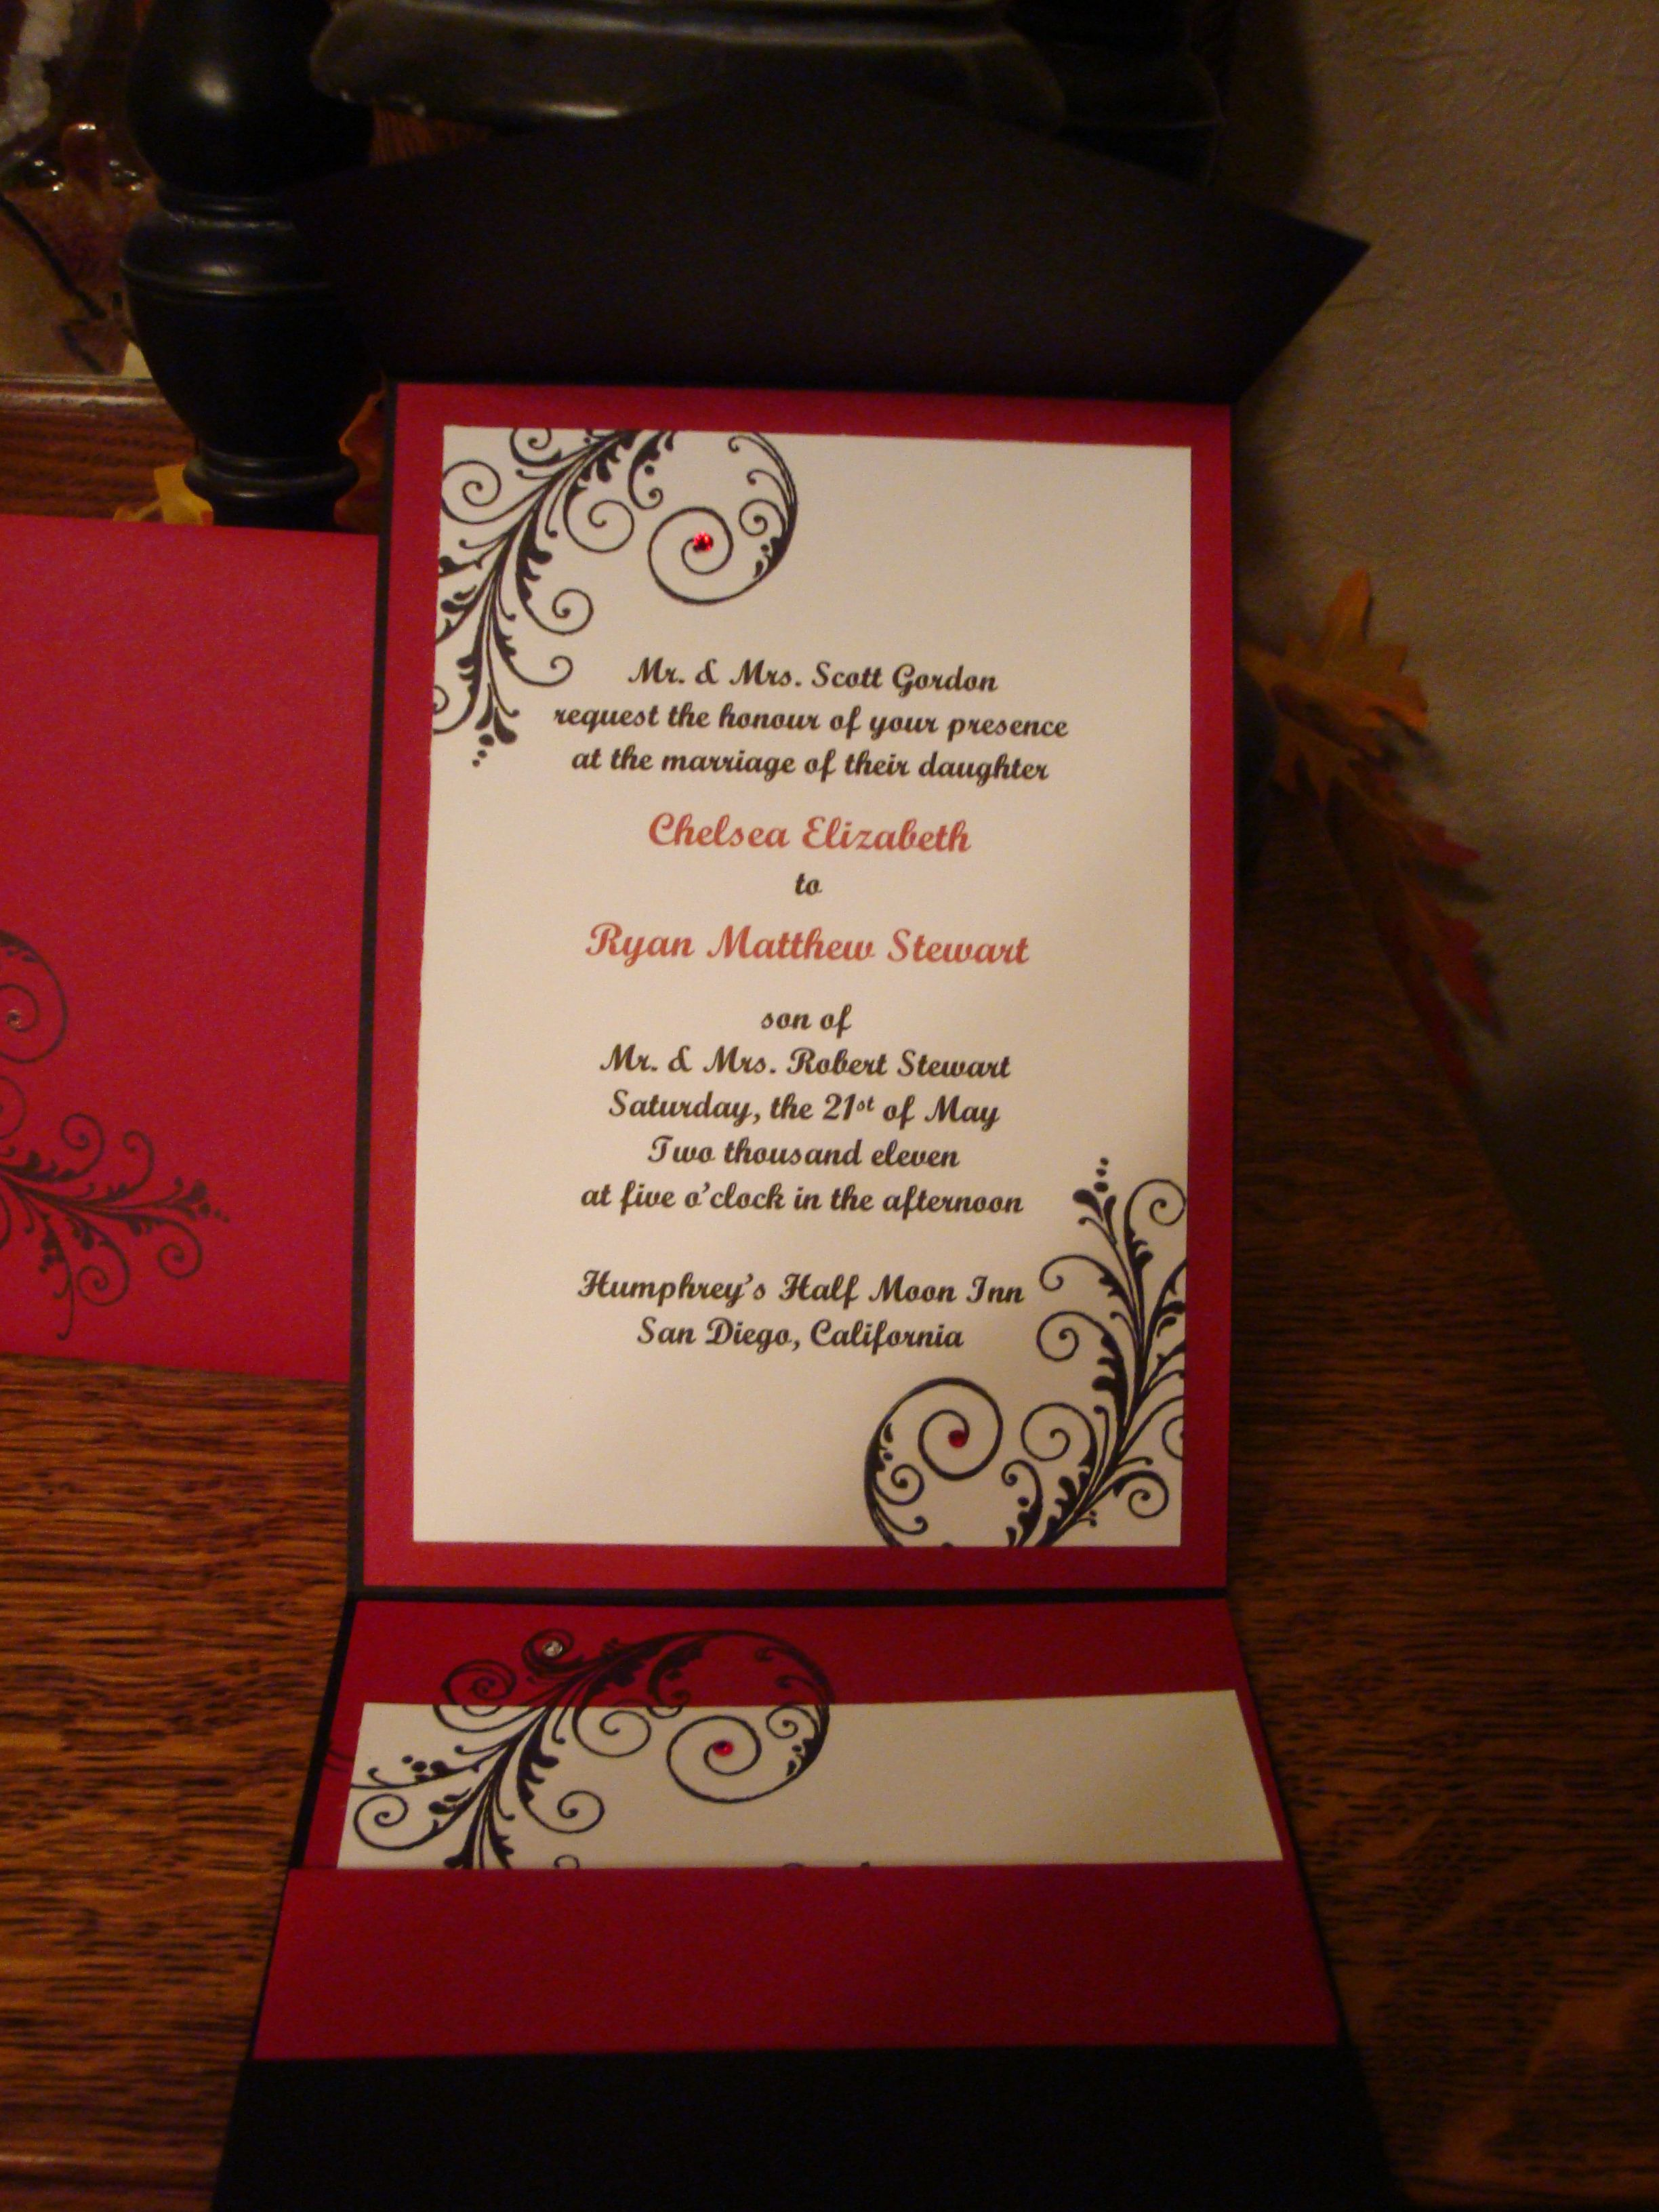 tie ribbon wedding invitation%0A Vintage Hollywood  u     Wedding Invitation  u     Metallic Red Envelope  u     Black Lace   u     Postcard  u     RSVP  u     Rhinestone Buckle  u     Red Satin Ribbon   Aisle Bound  u